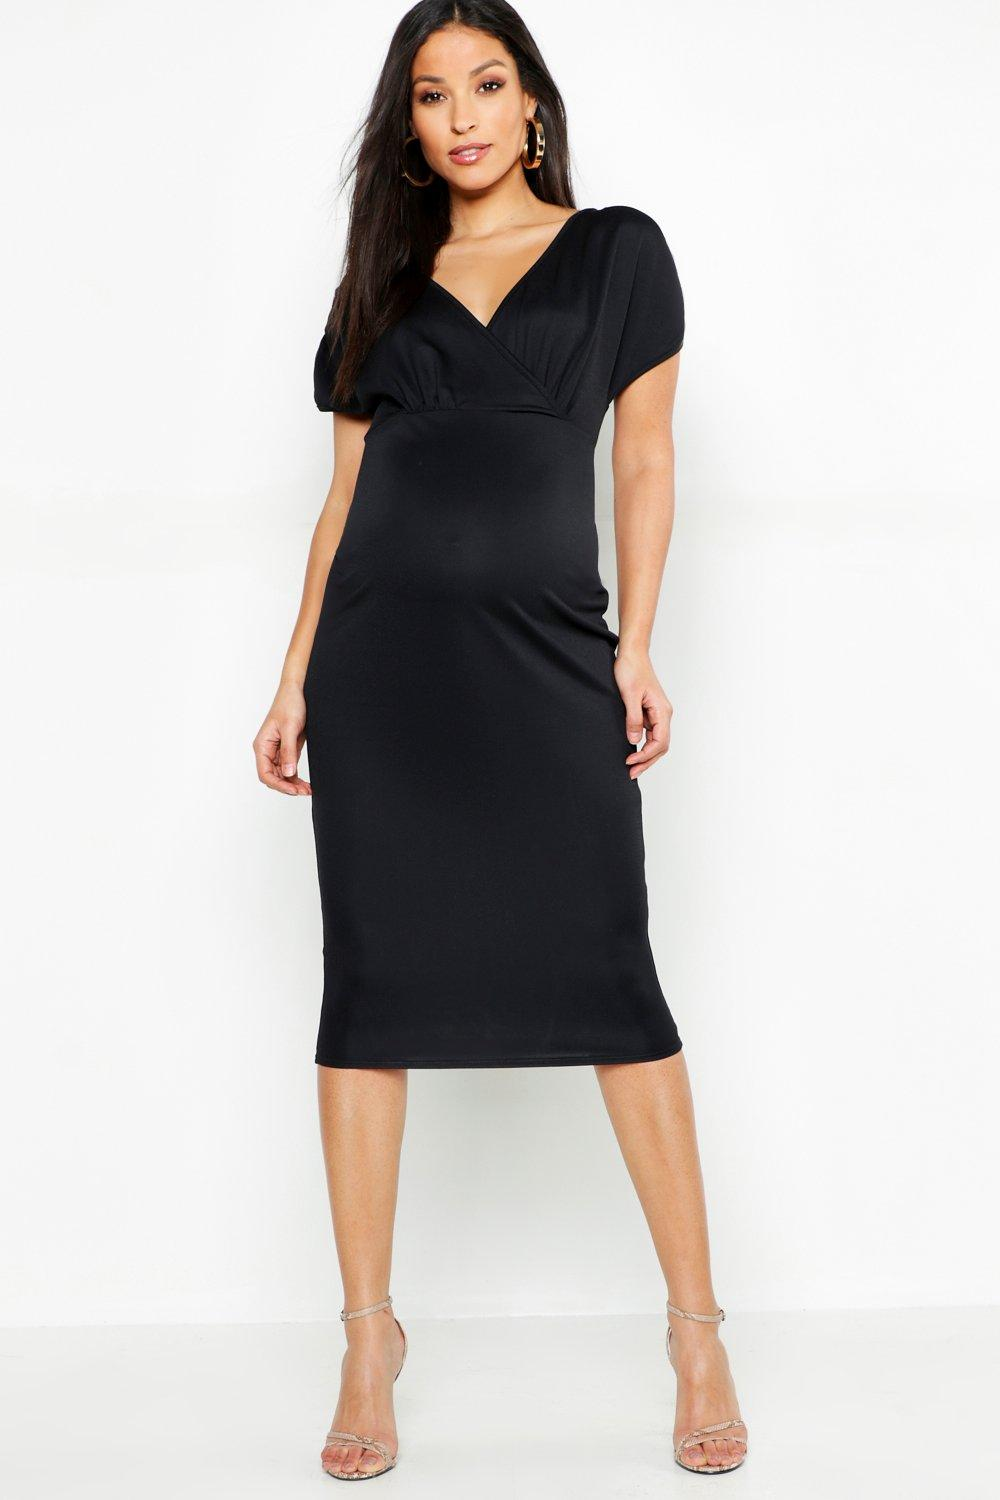 b43570c6cc29a Vintage Style Maternity Clothes Maternity Ruched Sleeve Wrap Front Midi  Dress $20.00 AT vintagedancer.com